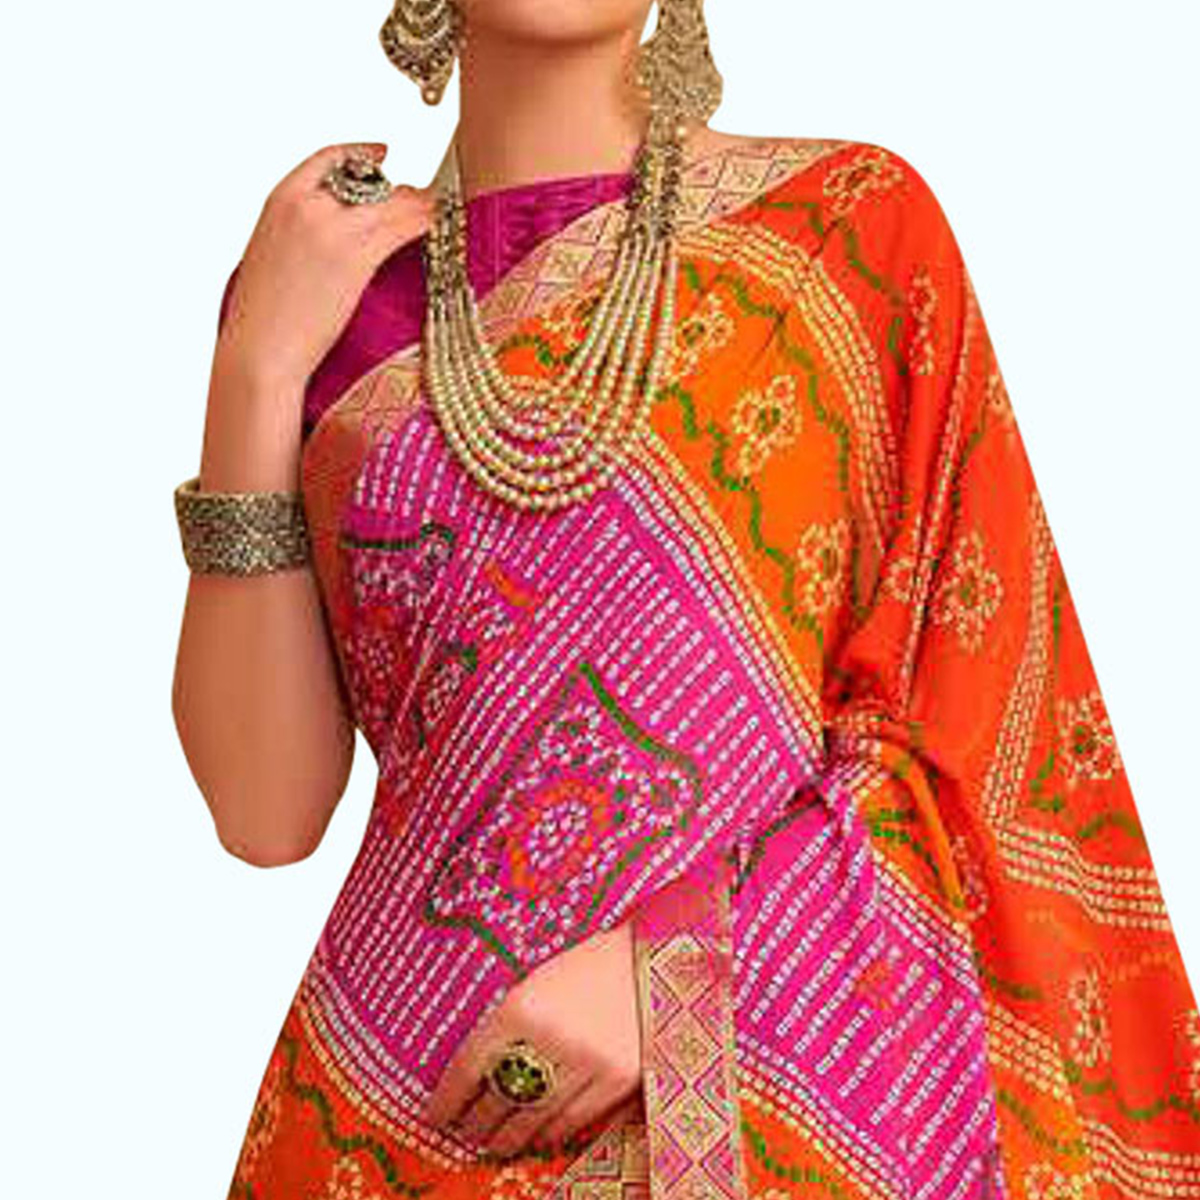 Attractive Orange-Pink Colored Bandhani Printed Heavy Georgette Saree With Jacquard Lace Border